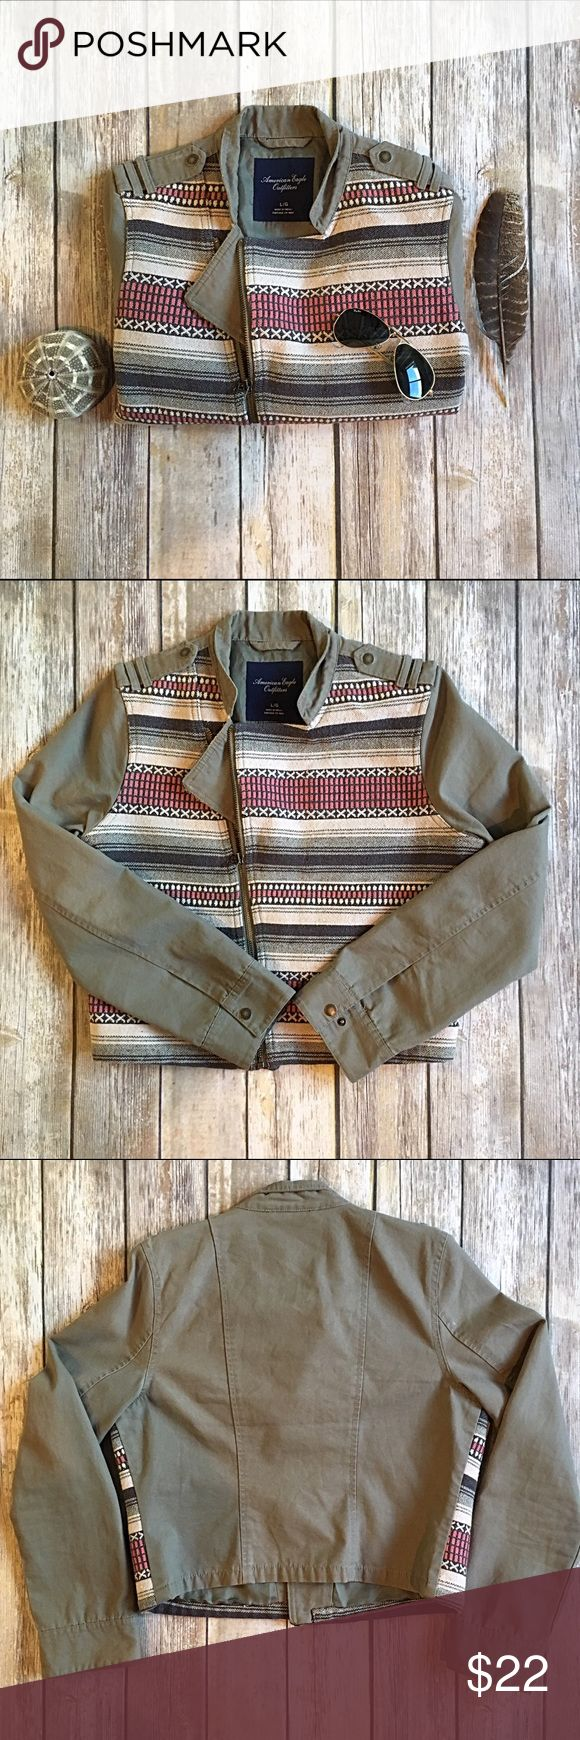 """American Eagle sz L Aztec striped zip up jacket American Eagle sz L Aztec ethnic striped zip up army biker style jacket. Bust 18"""", length 20"""", sleeve length 25"""". Front 63% cotton 33% polyester 4% other fibers, back 100% cotton. American Eagle Outfitters Jackets & Coats"""